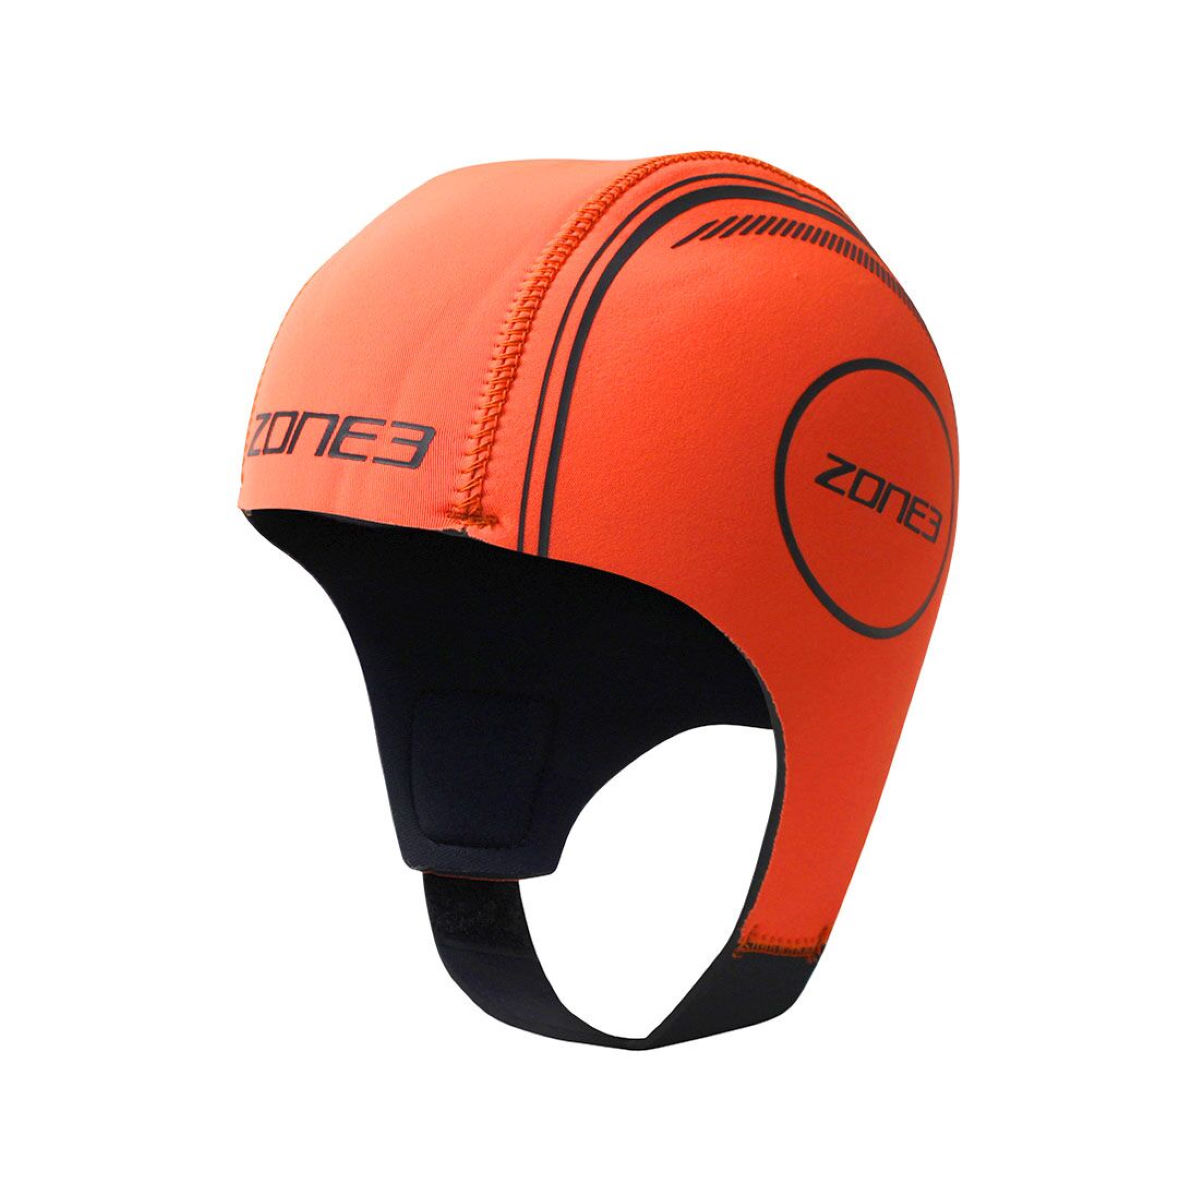 Image of Bonnet de natation Zone3 (néoprène) - Large Hi-Vis Orange